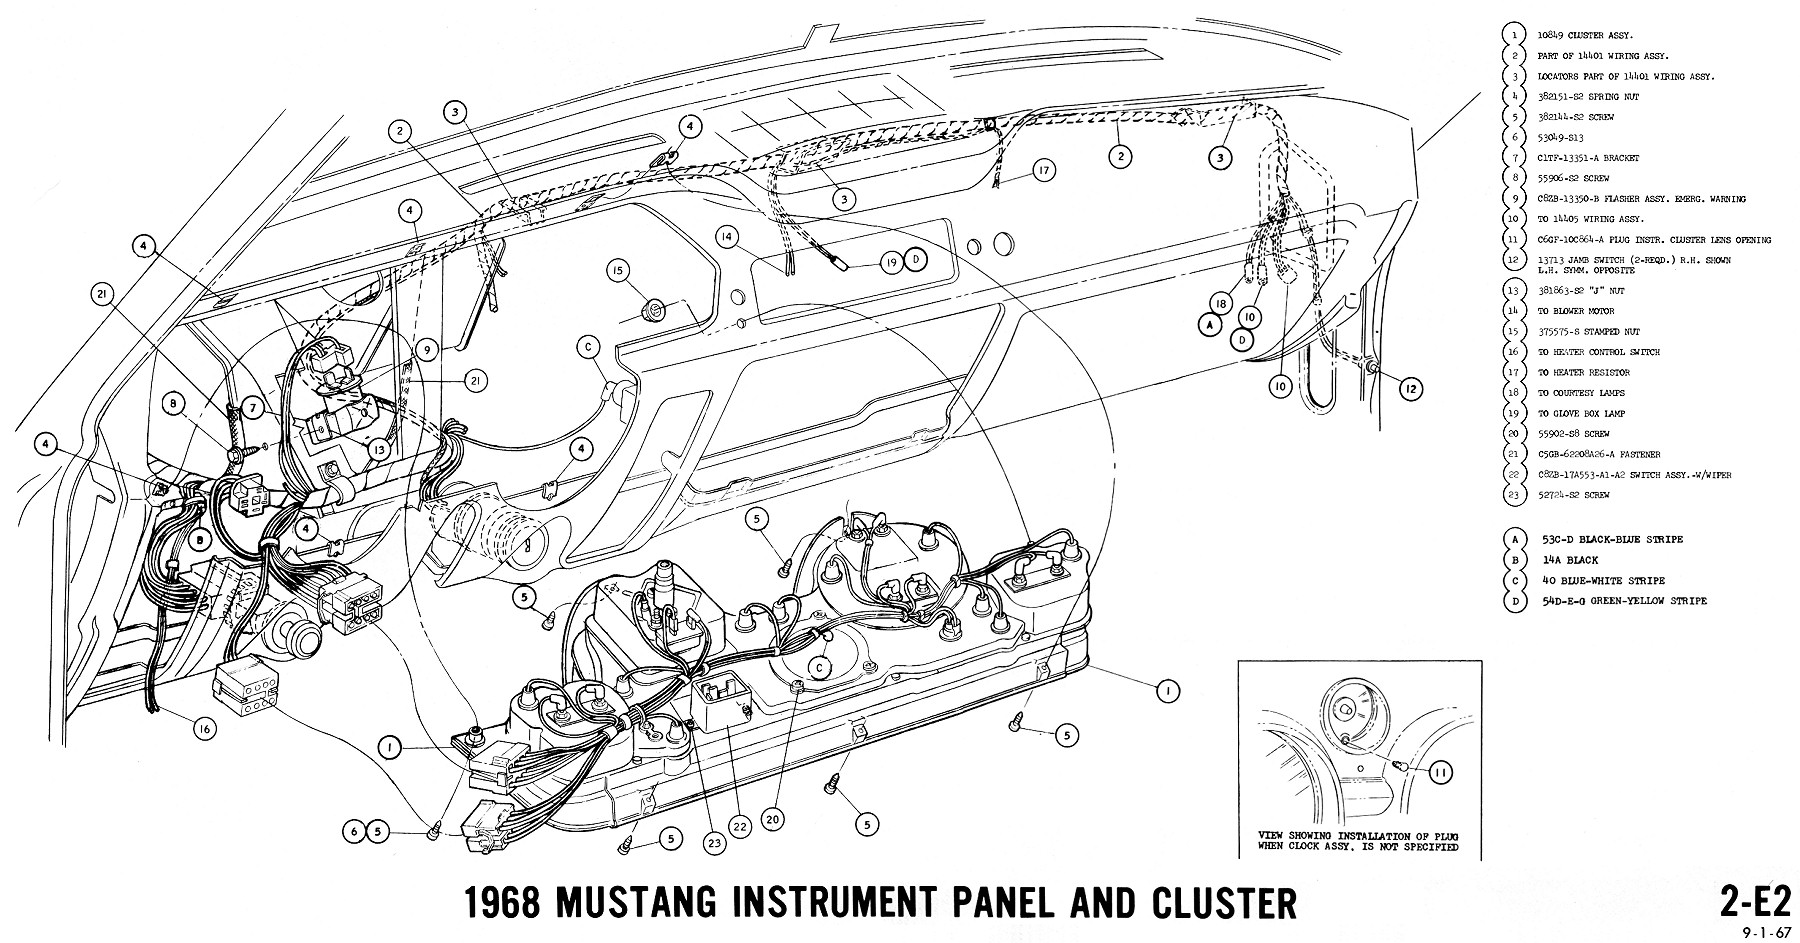 1966 mustang instrument cluster wiring diagram 1966 1968 mustang wiring diagrams and vacuum schematics average joe on 1966 mustang instrument cluster wiring diagram